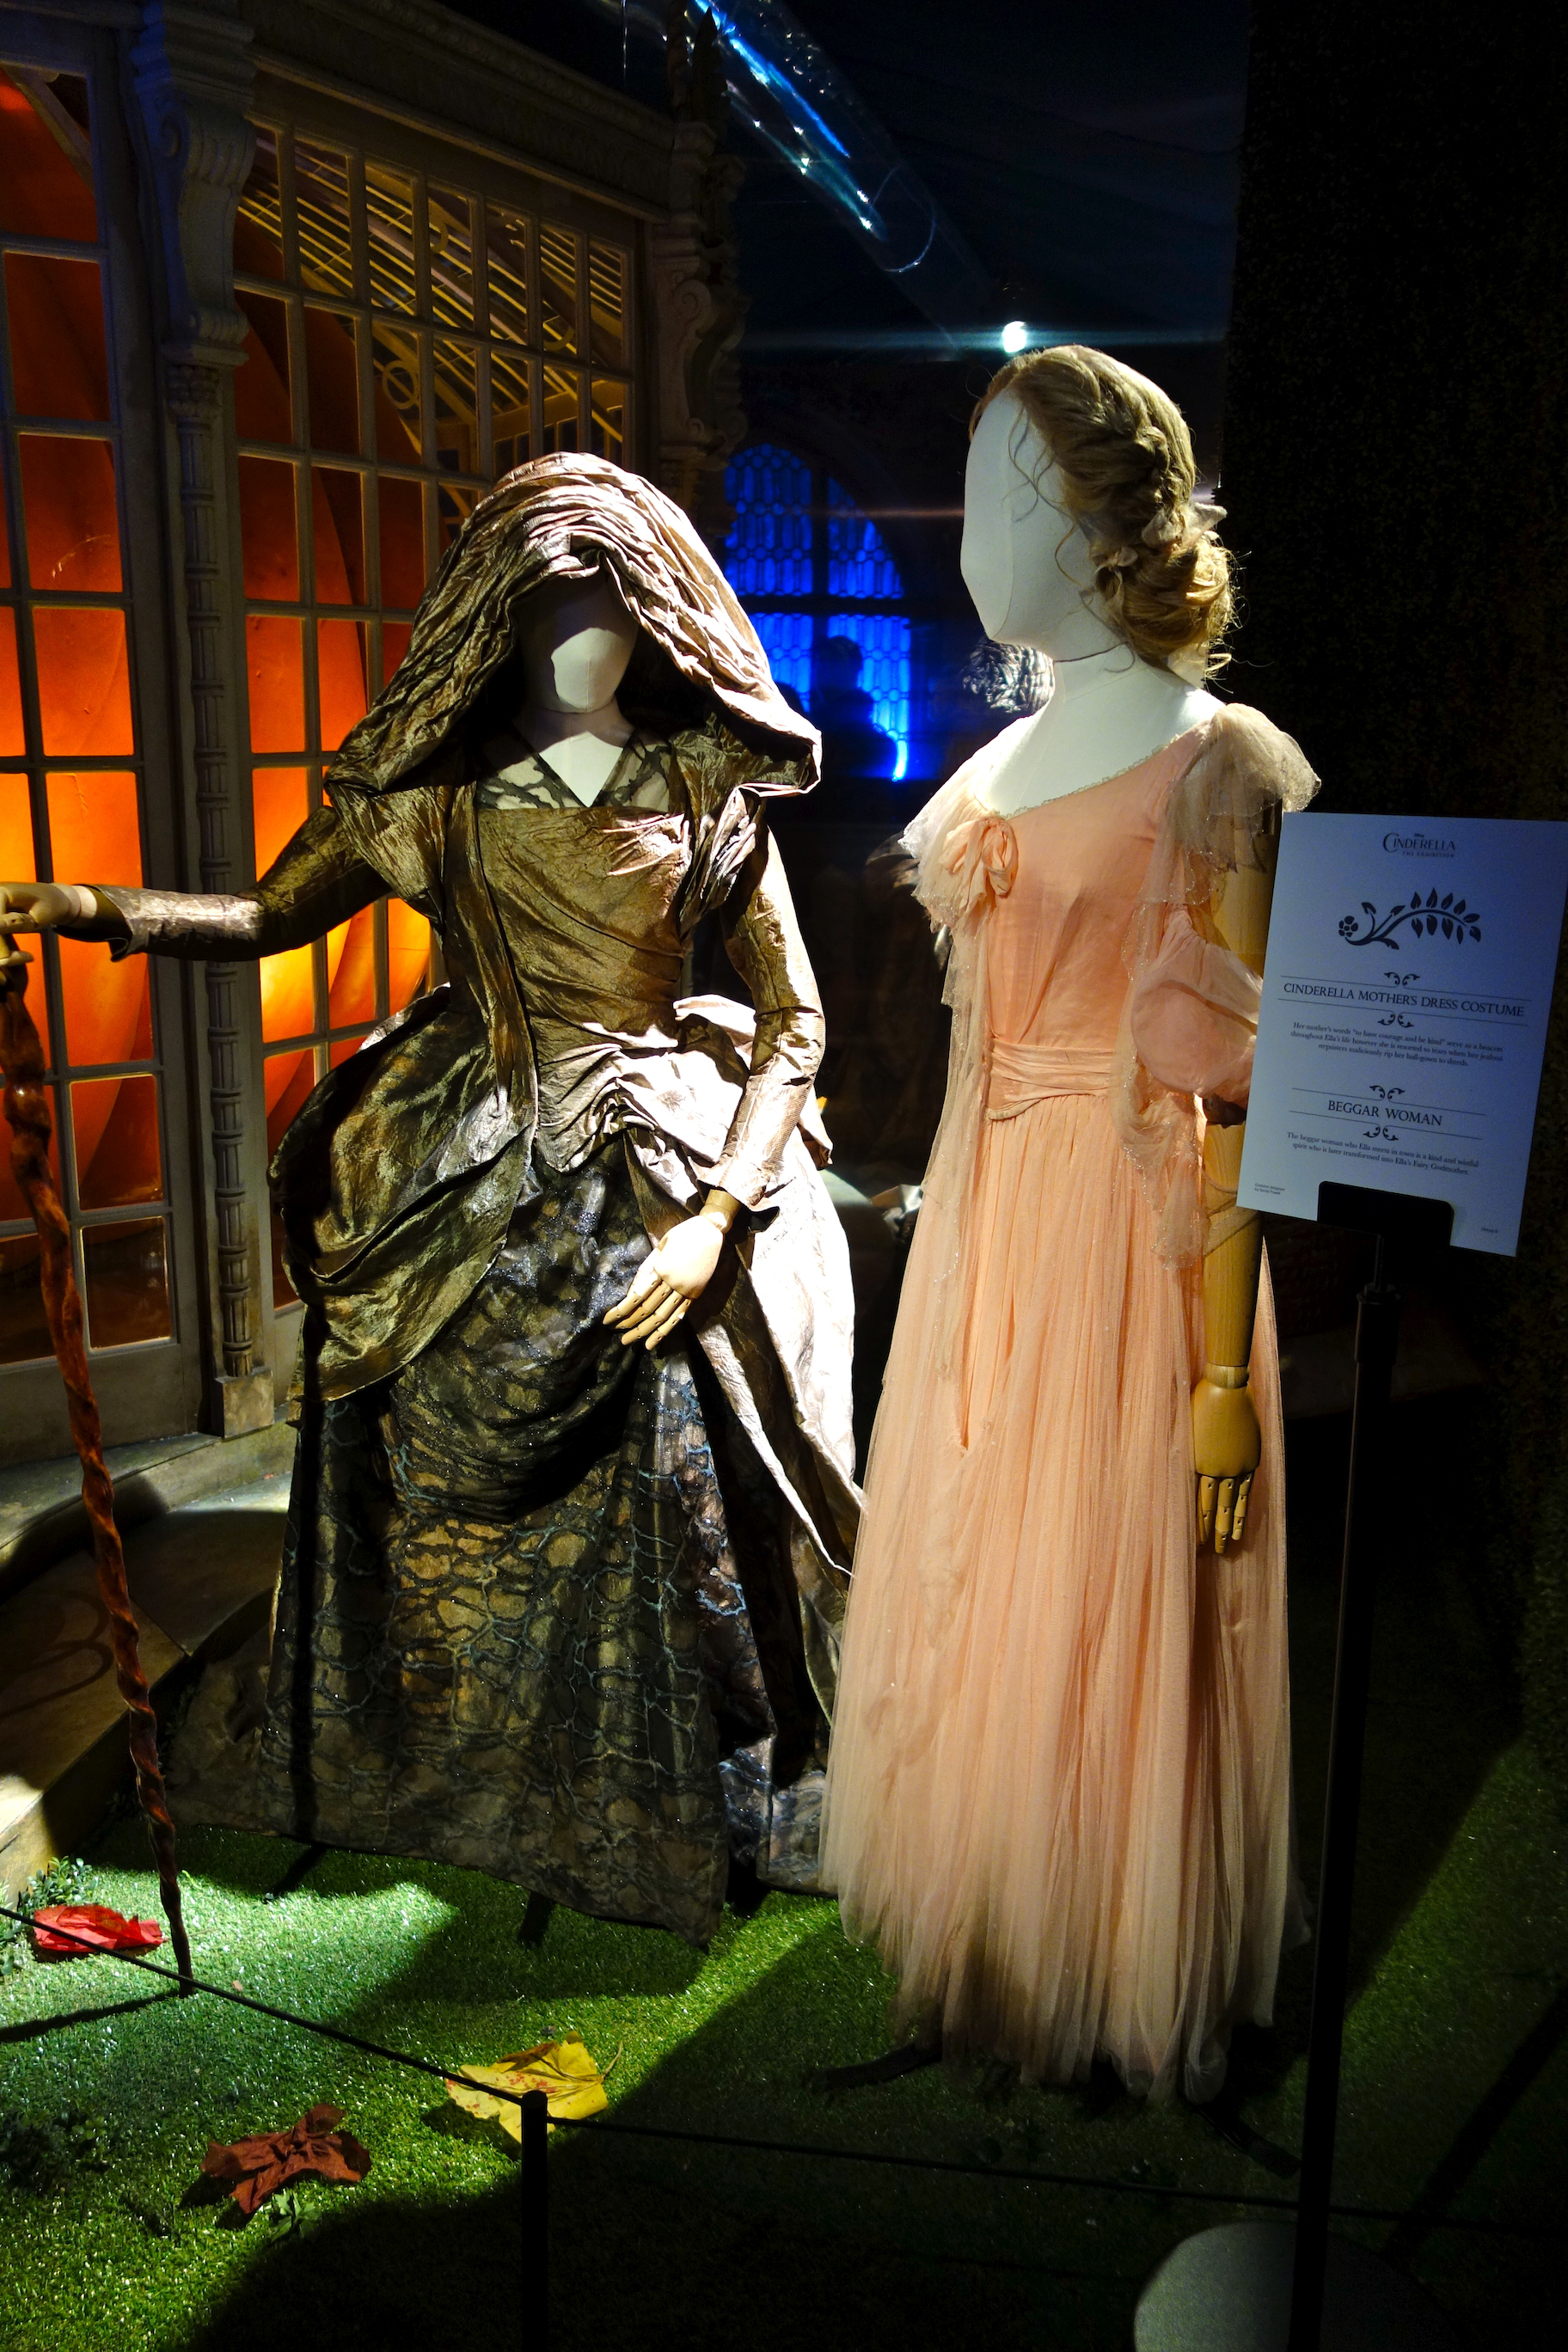 Small Exhibition Stand For : Cinderella costume exhibit in london sparklyeverafter